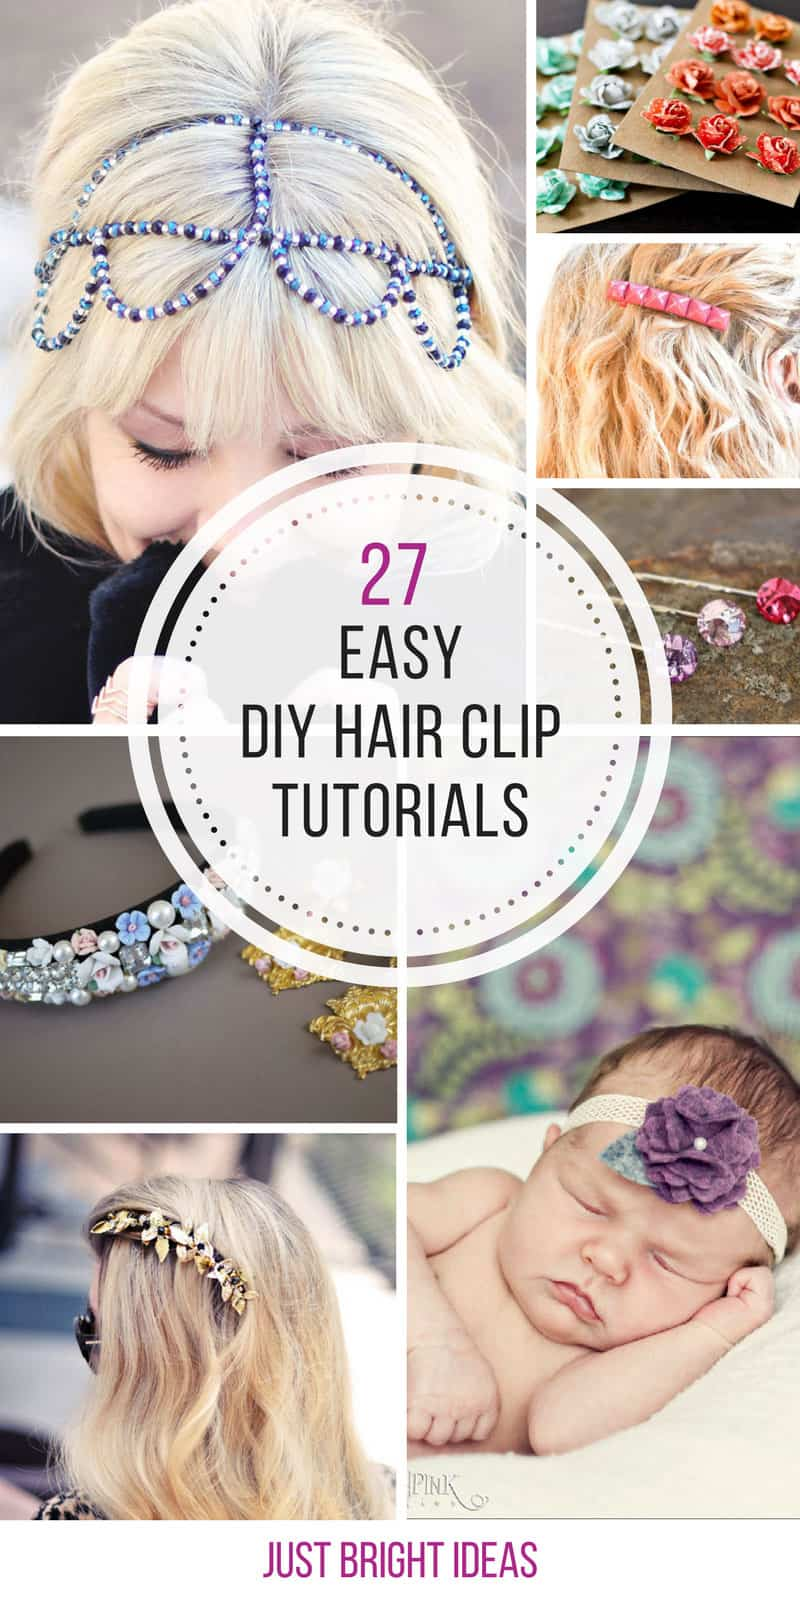 These hair clips are so easy to make! Thanks for sharing!